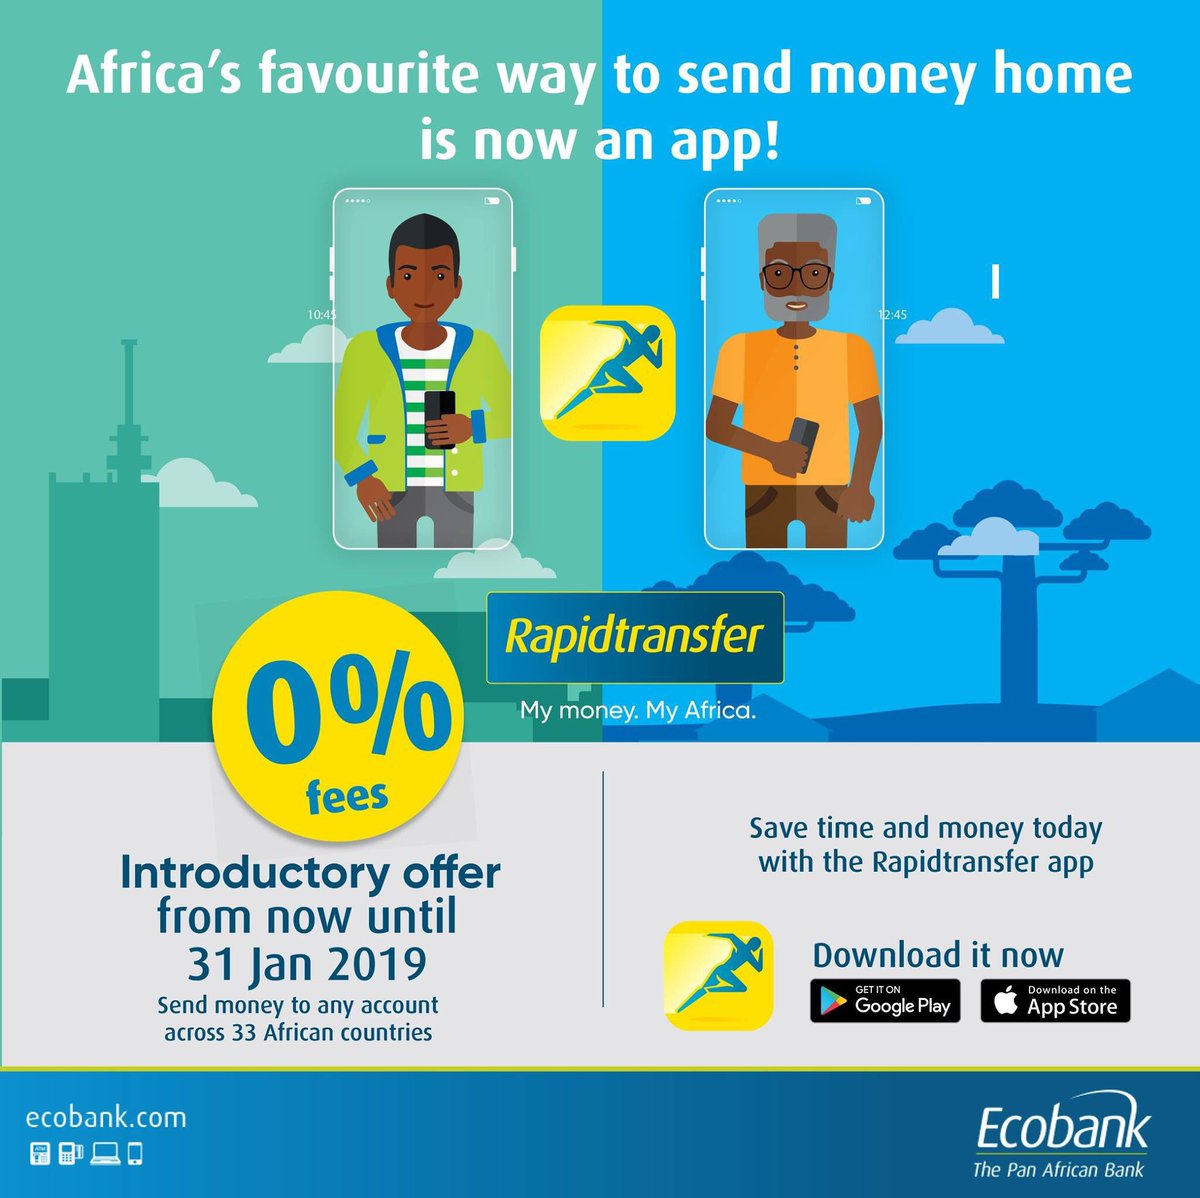 Cameroonian Bank Account Or Cash Can Be Picked Up At Any Ecobank Branch Nationwide And Share The Rapidtransfer Now